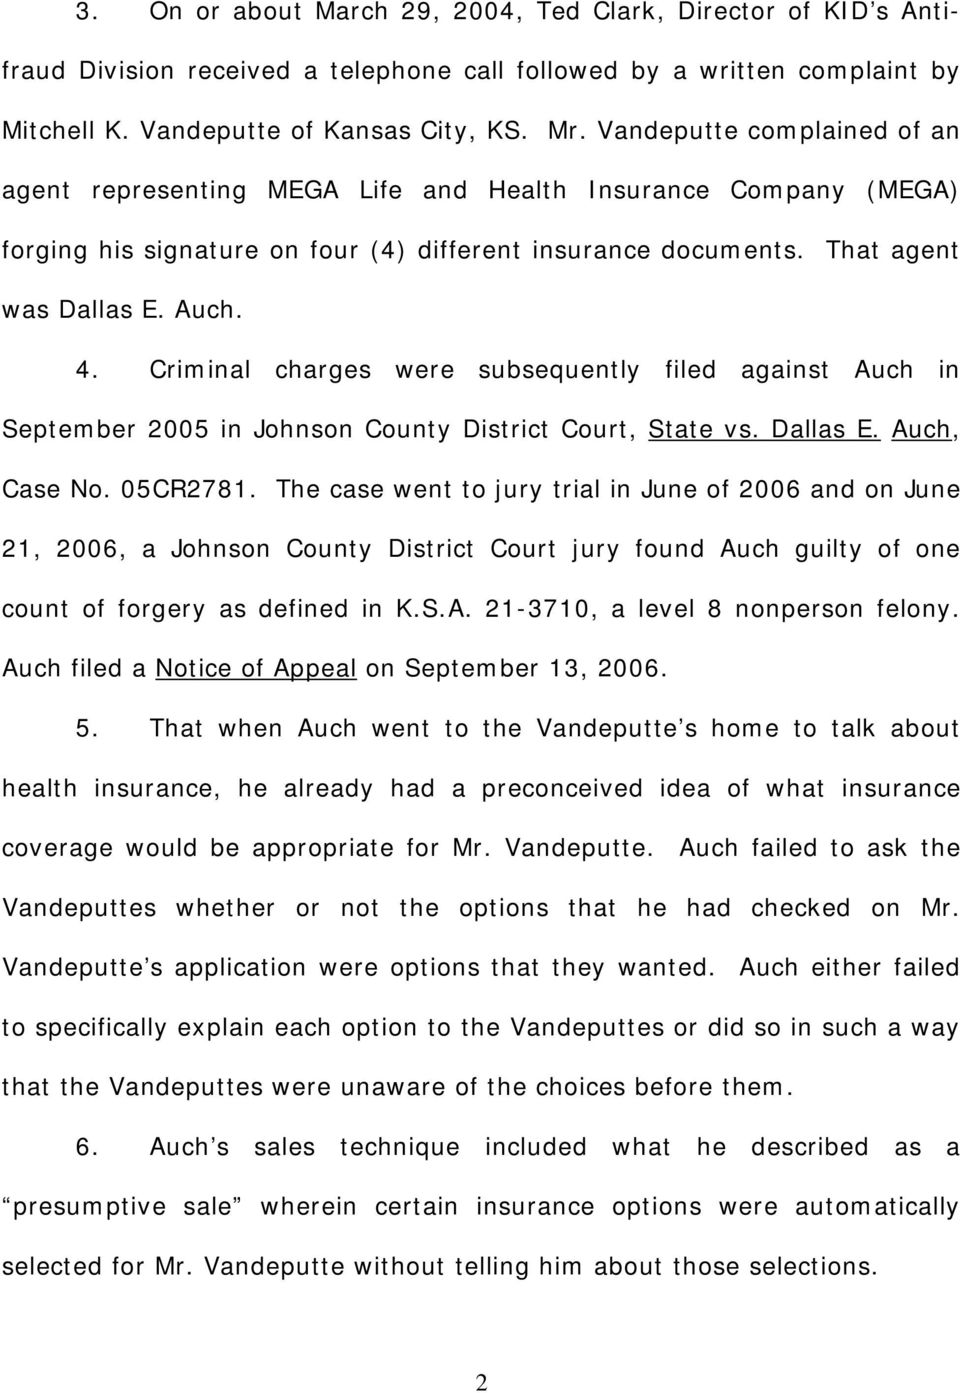 Criminal charges were subsequently filed against Auch in September 2005 in Johnson County District Court, State vs. Dallas E. Auch, Case No. 05CR2781.